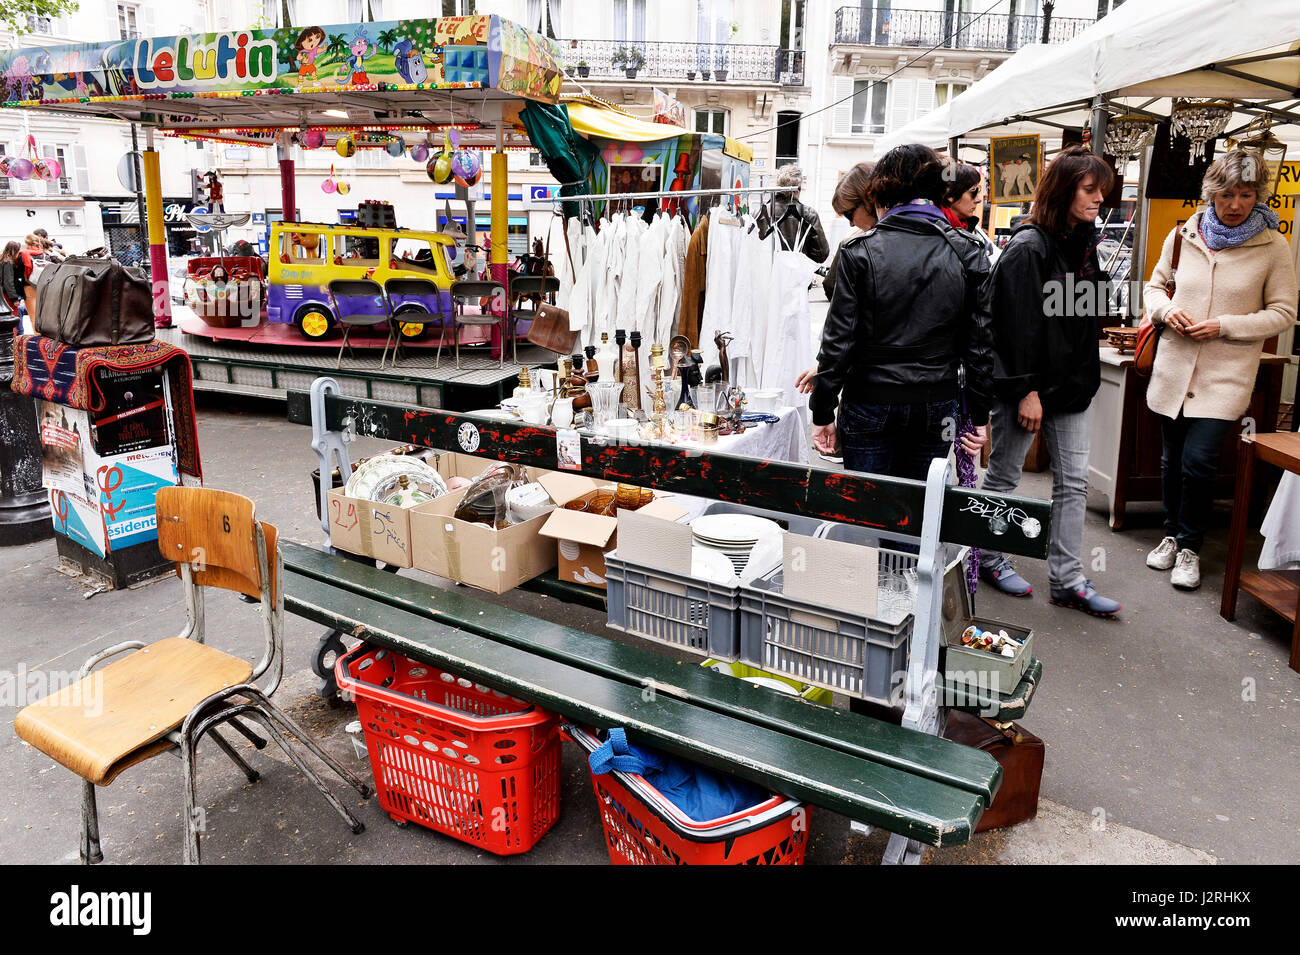 Brocante Cours De Vincennes Brocante De Paris Photos Brocante De Paris Images Alamy